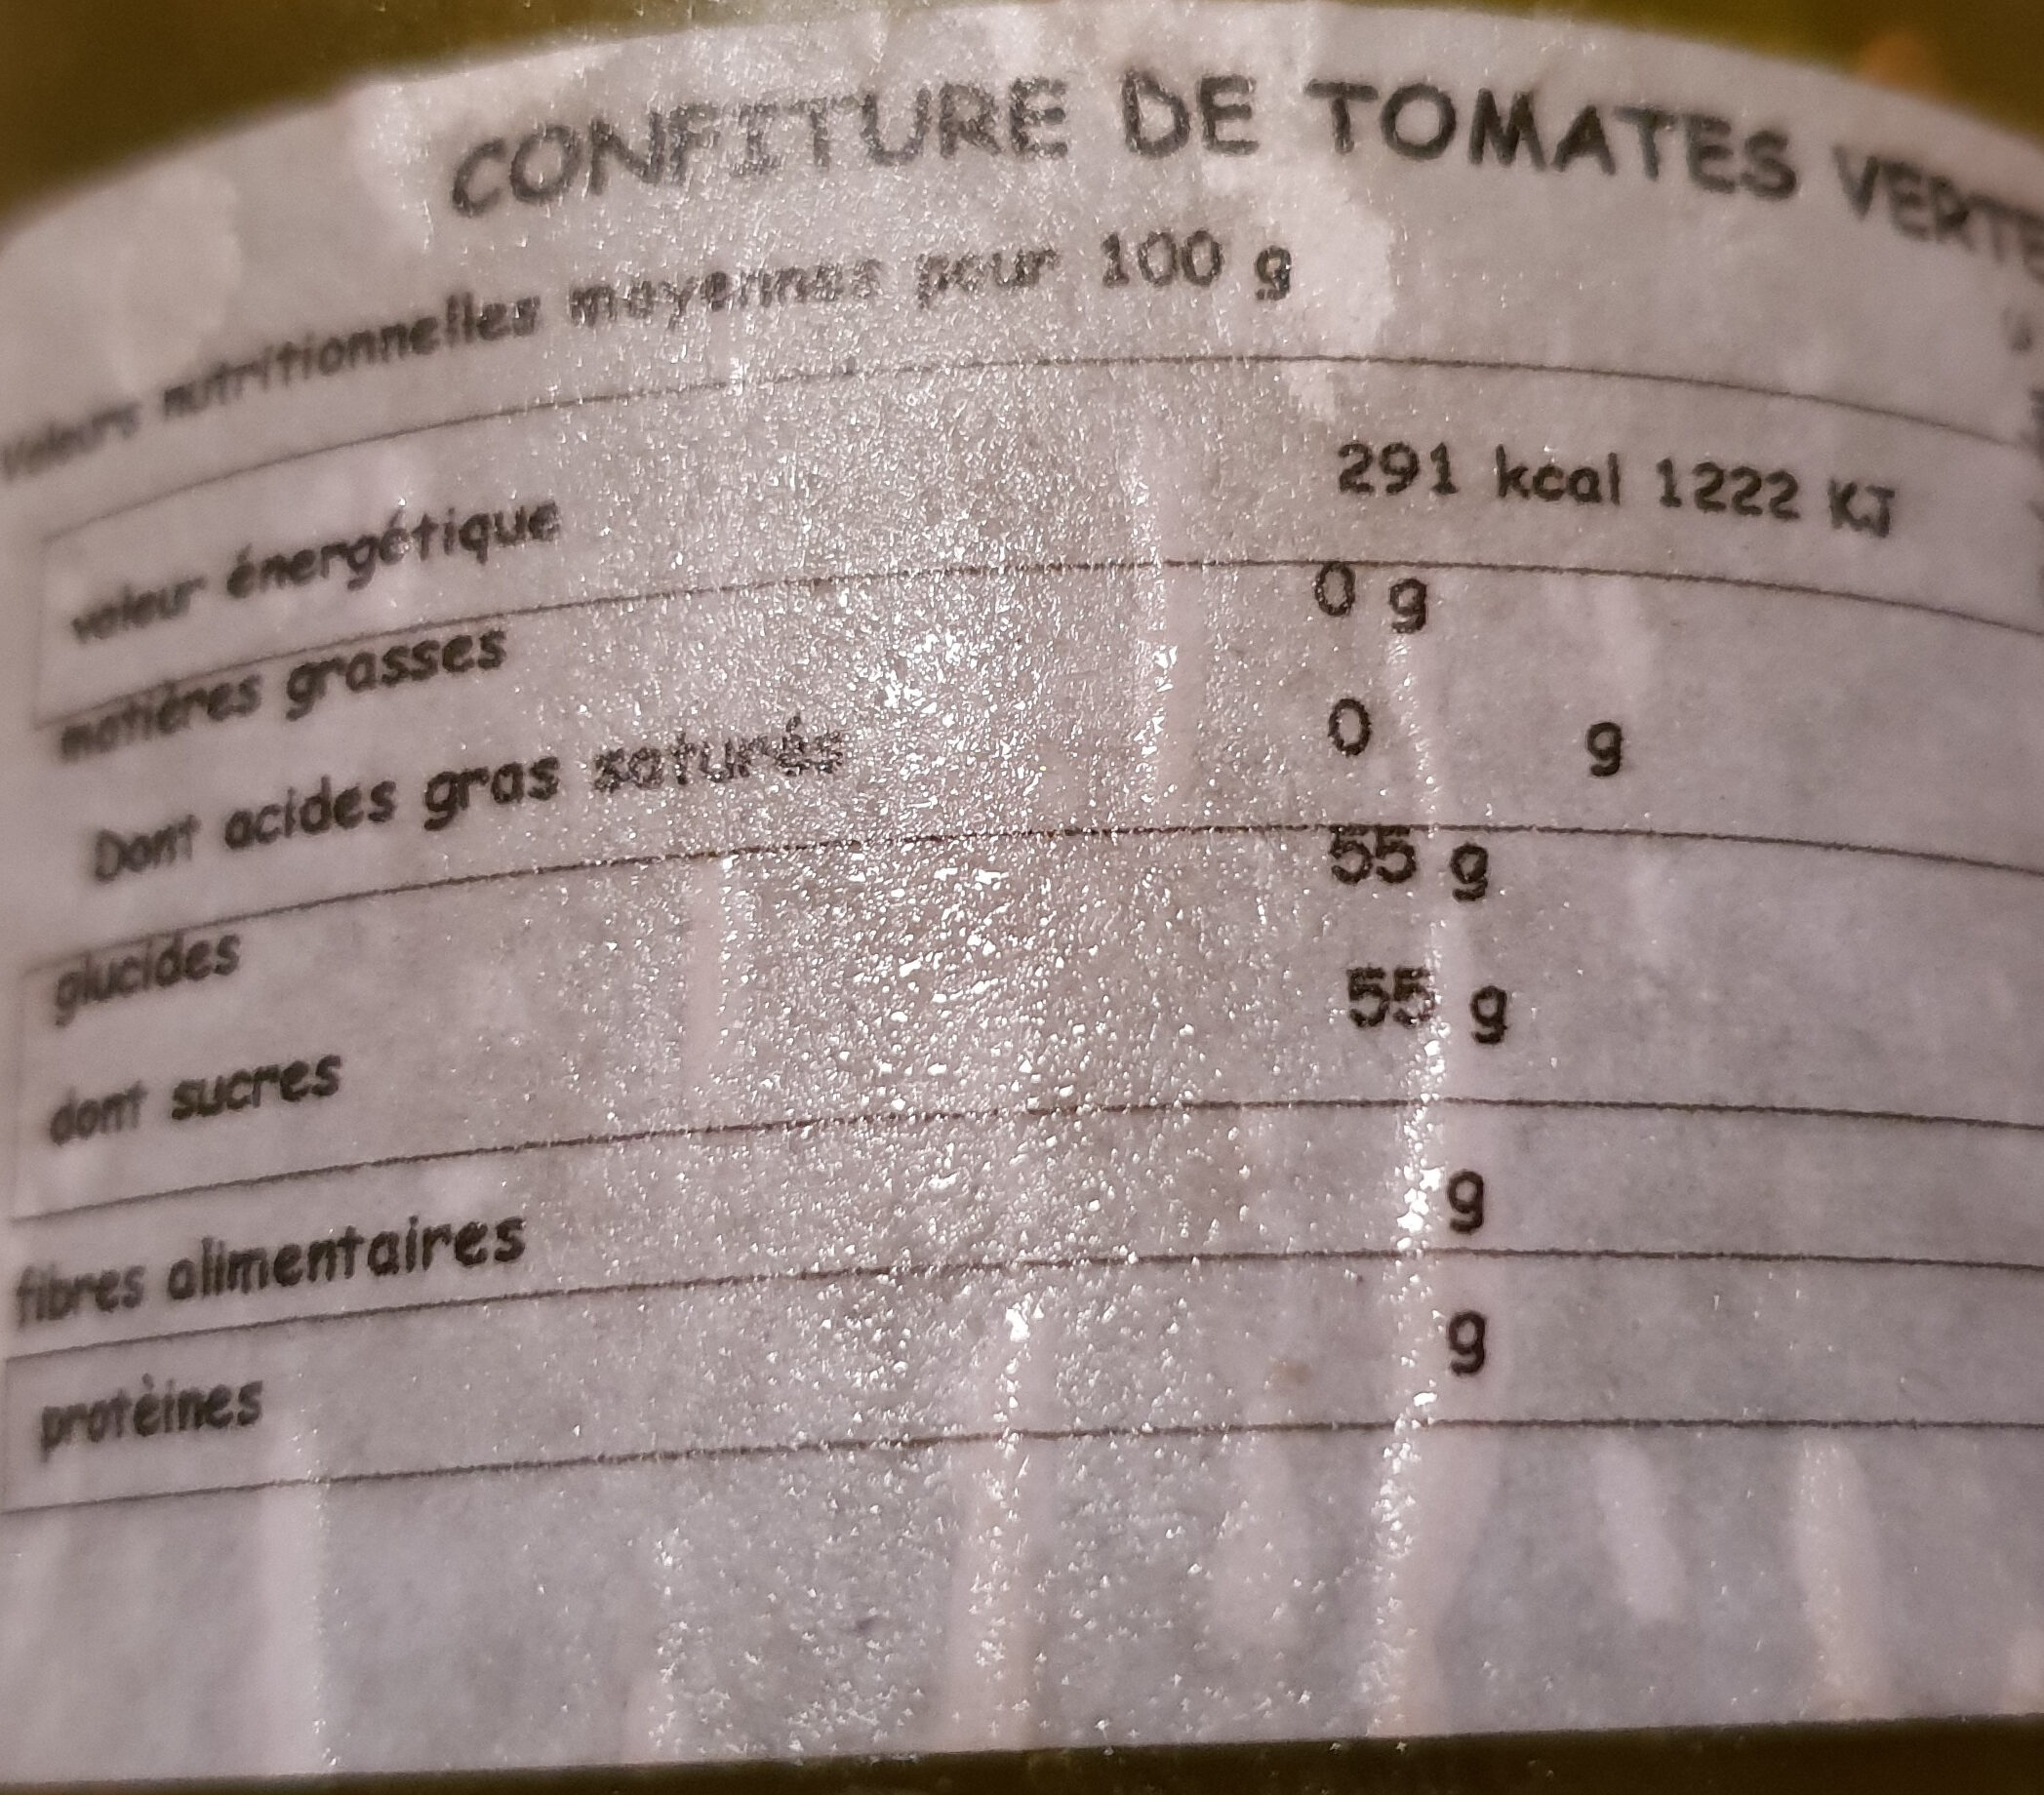 confiture tomates vertes - Nutrition facts